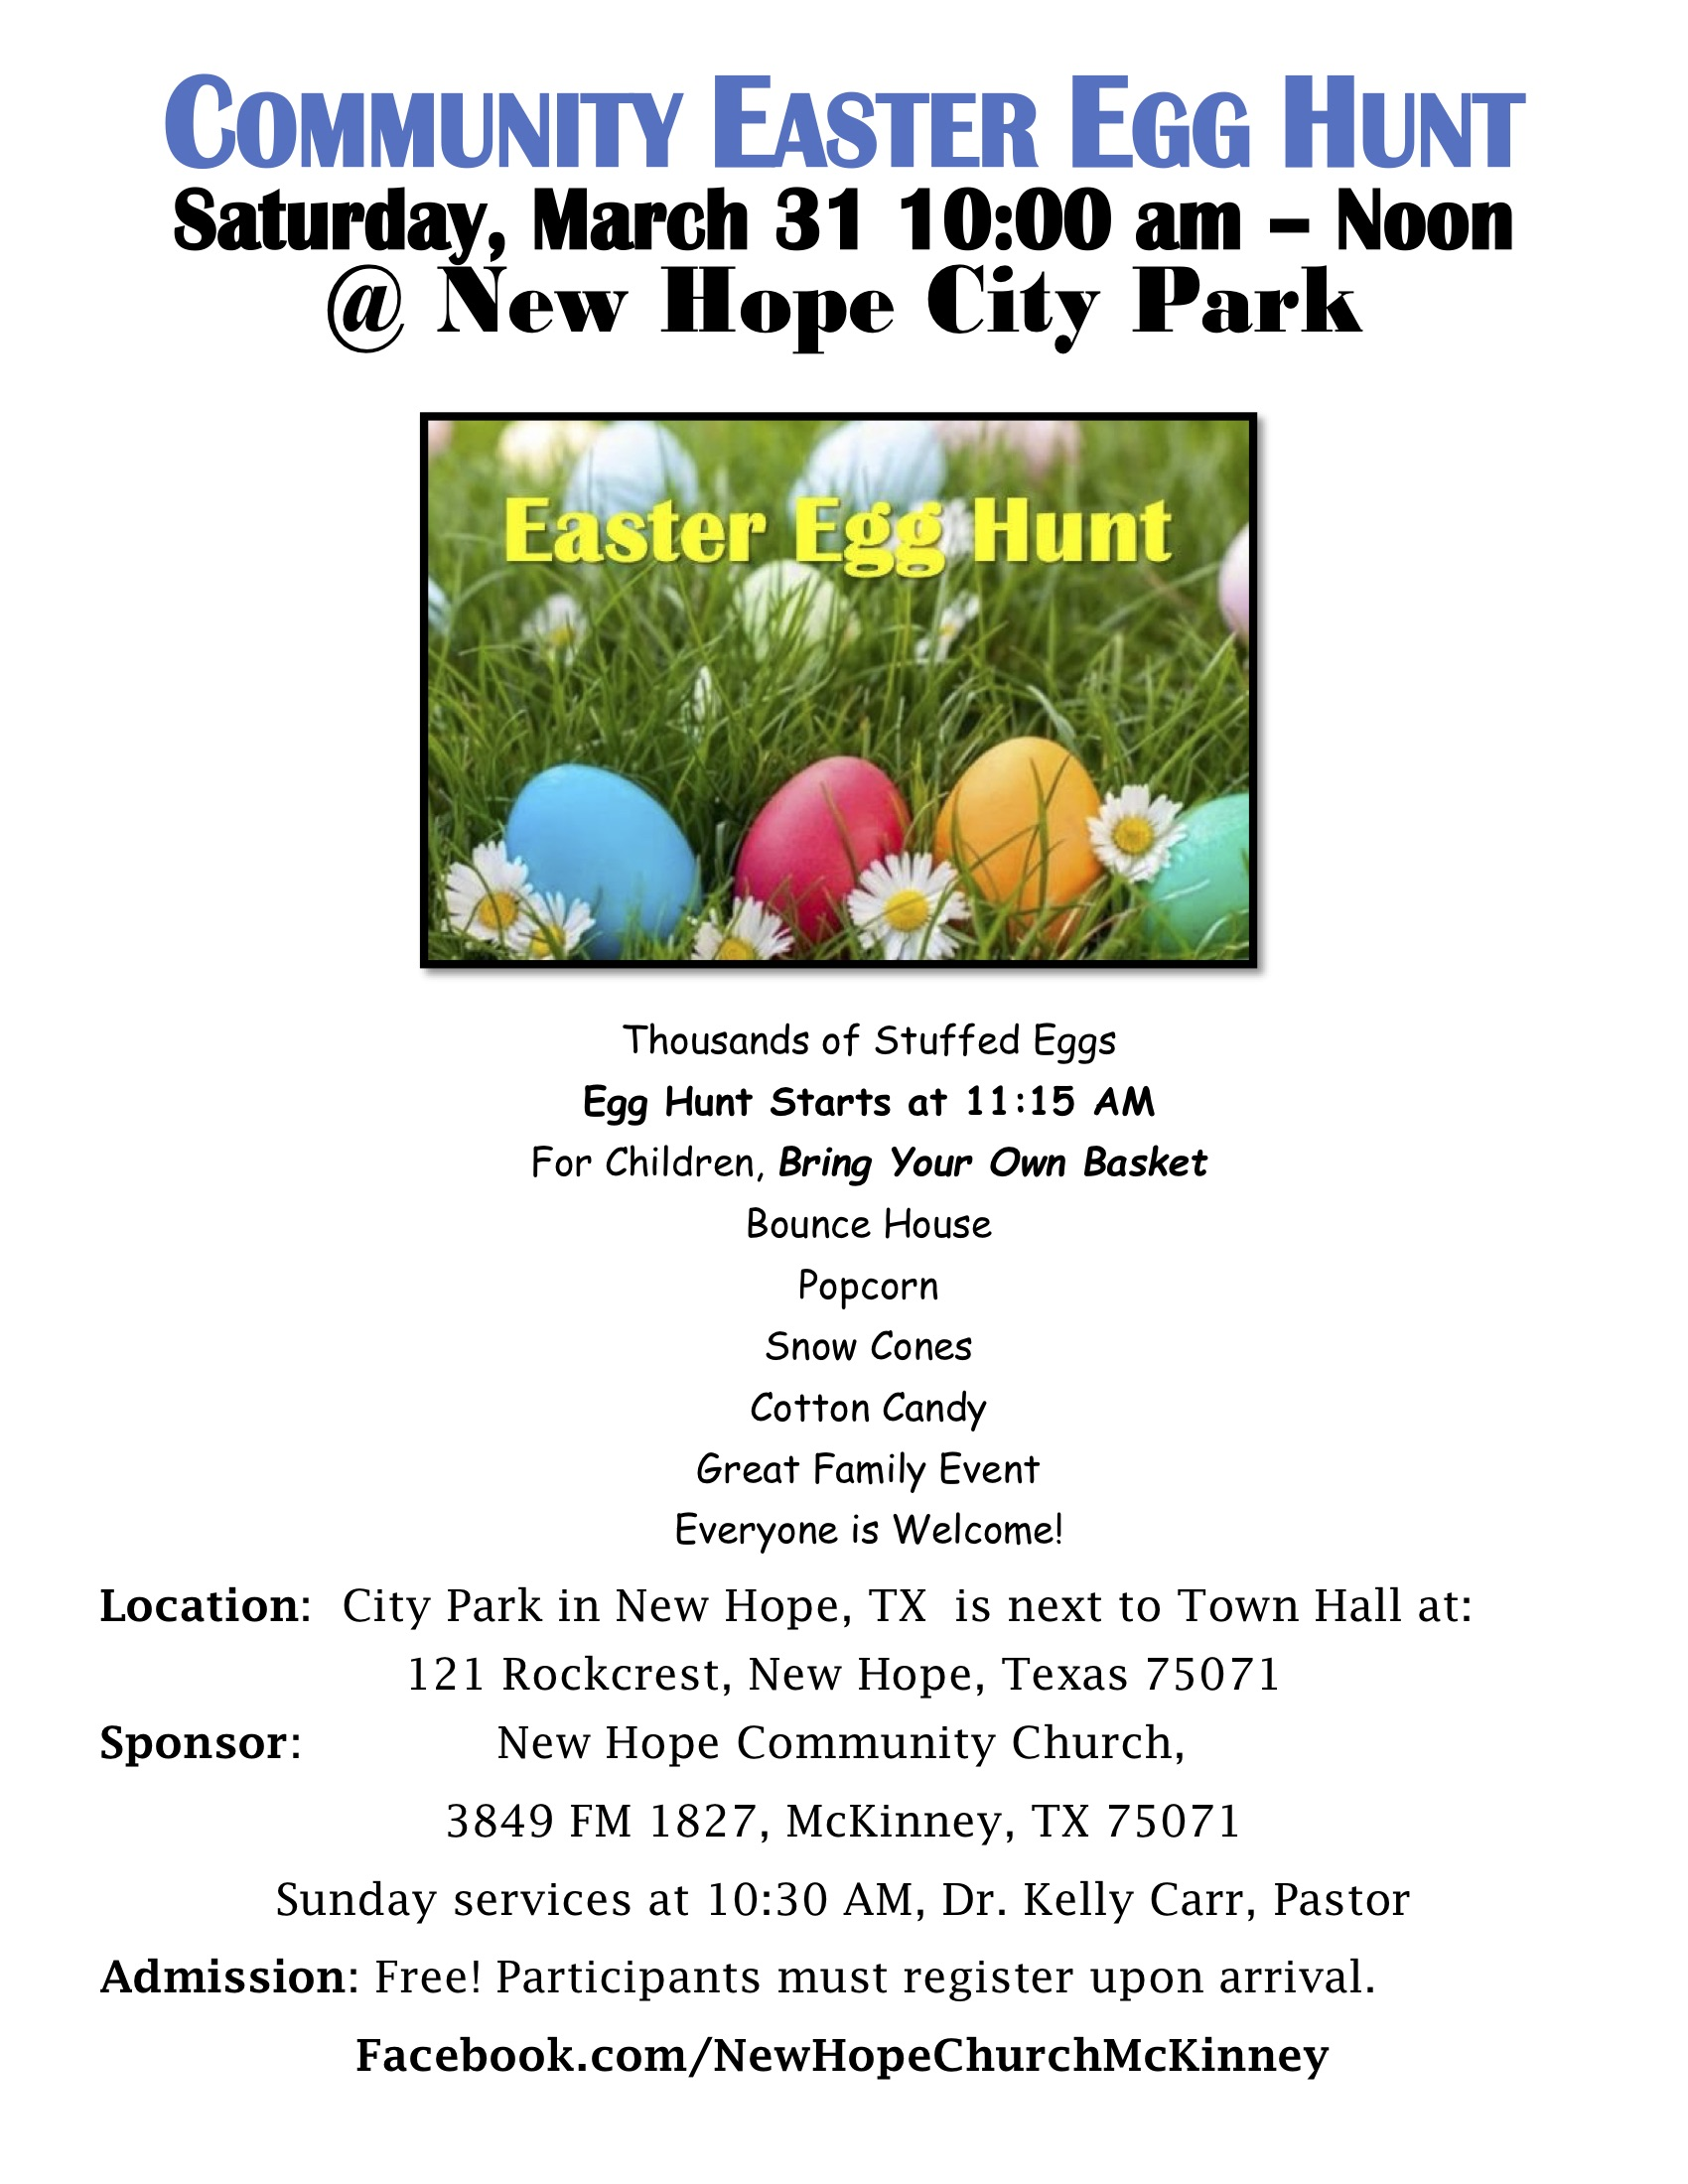 Community Easter Egg Hunt poster b.jpg